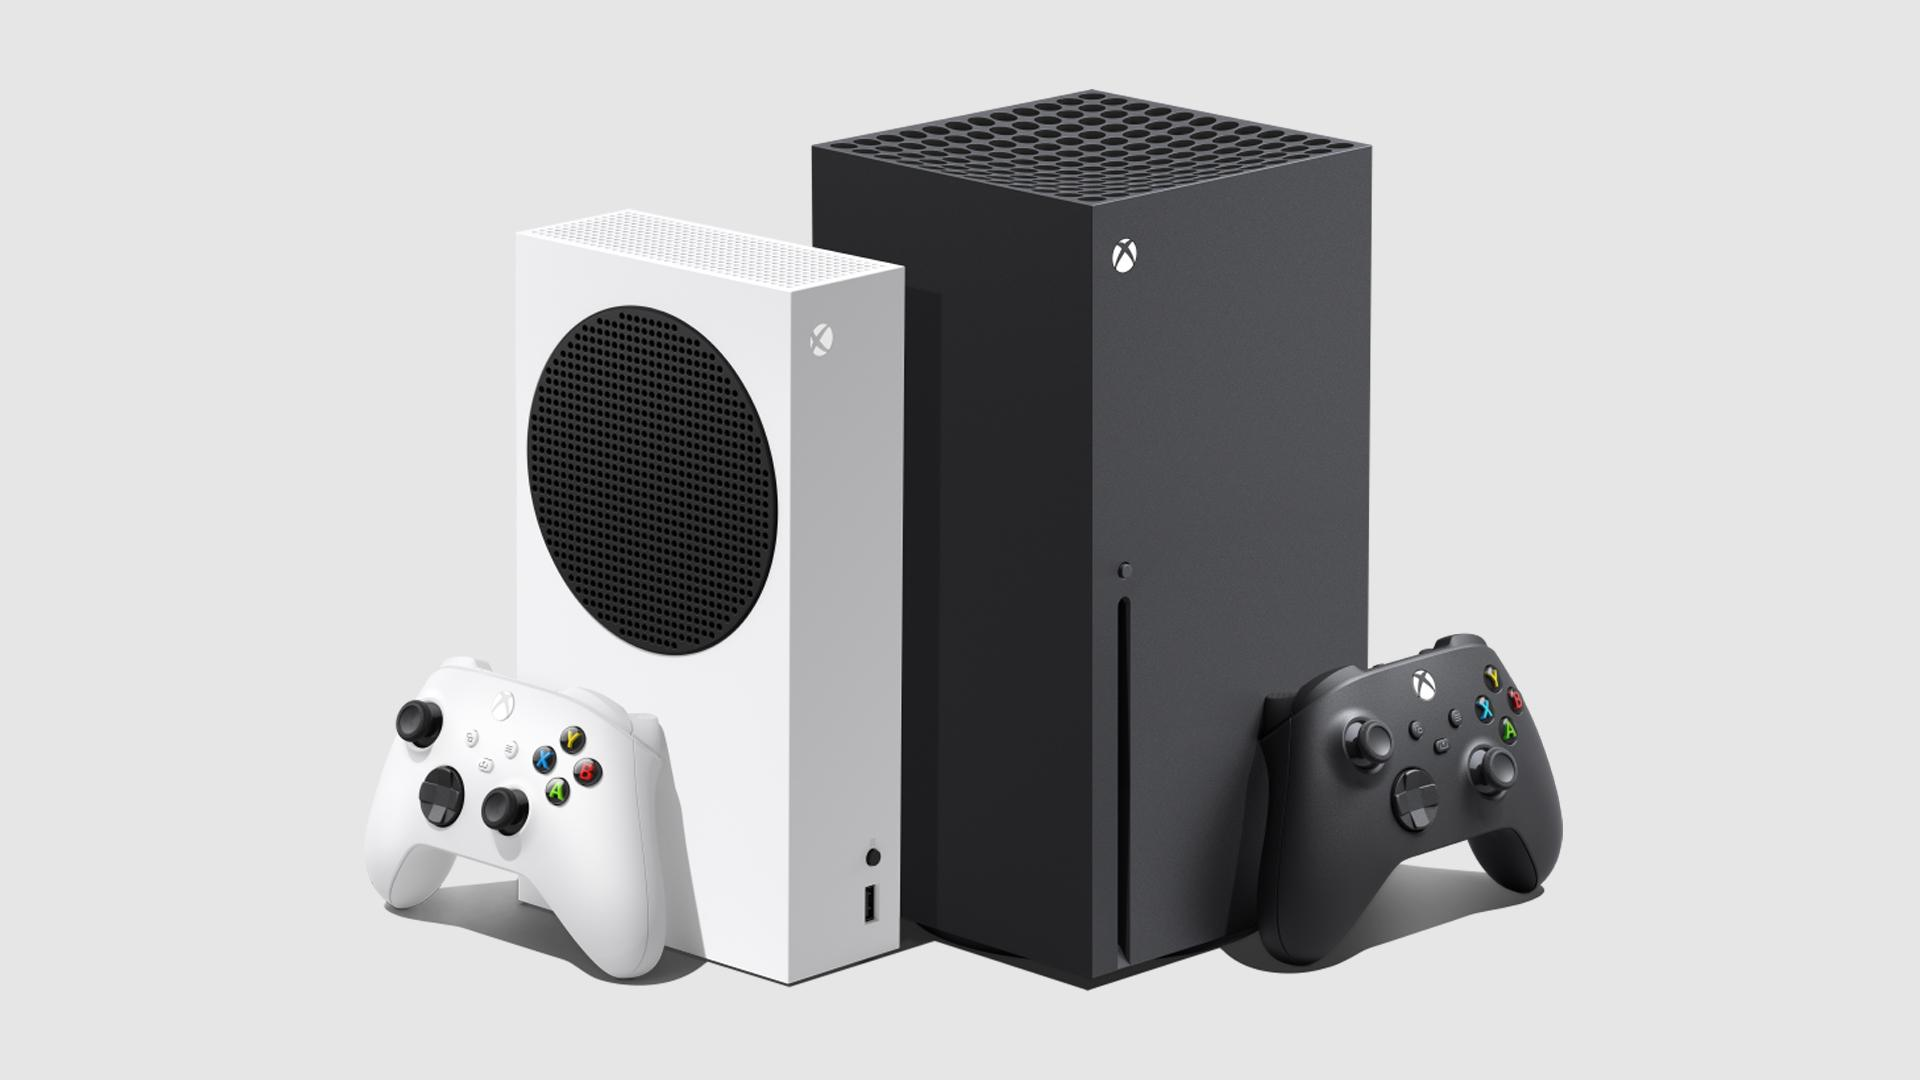 Xbox Series X: Details, Price, and Where To Buy In Ghana